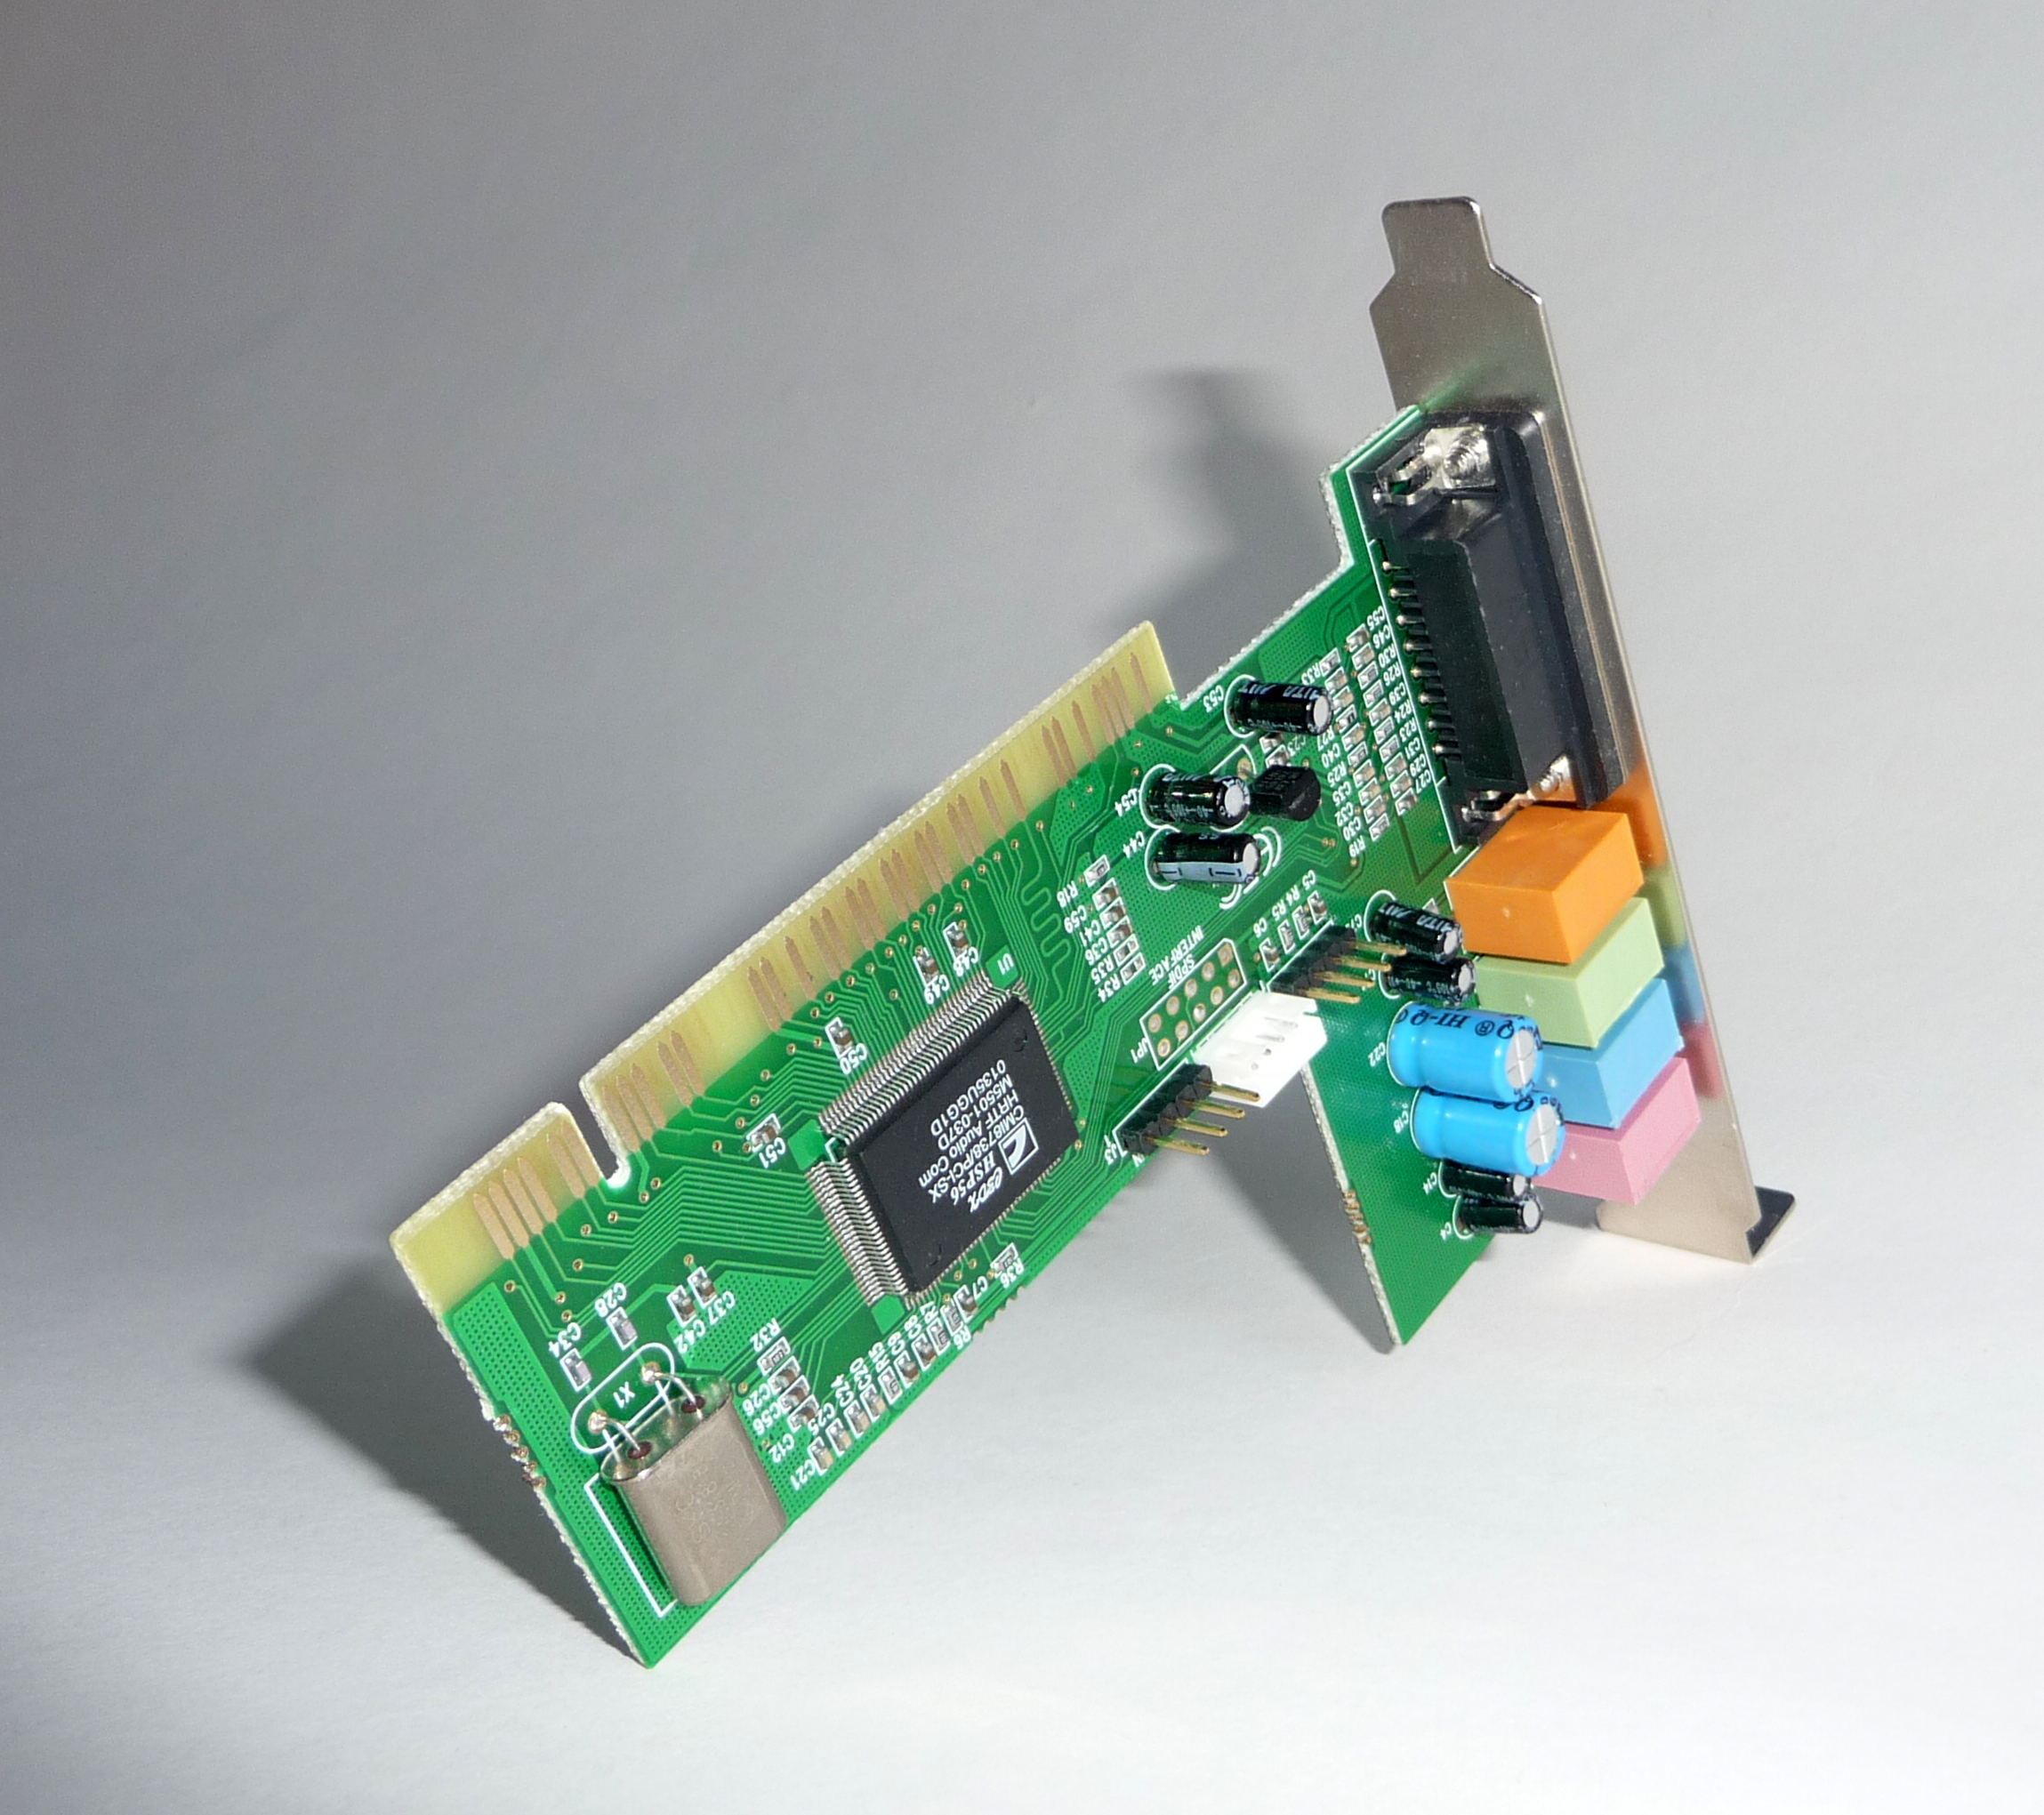 CMEDIA HSP56 SOUND CARD DRIVER DOWNLOAD